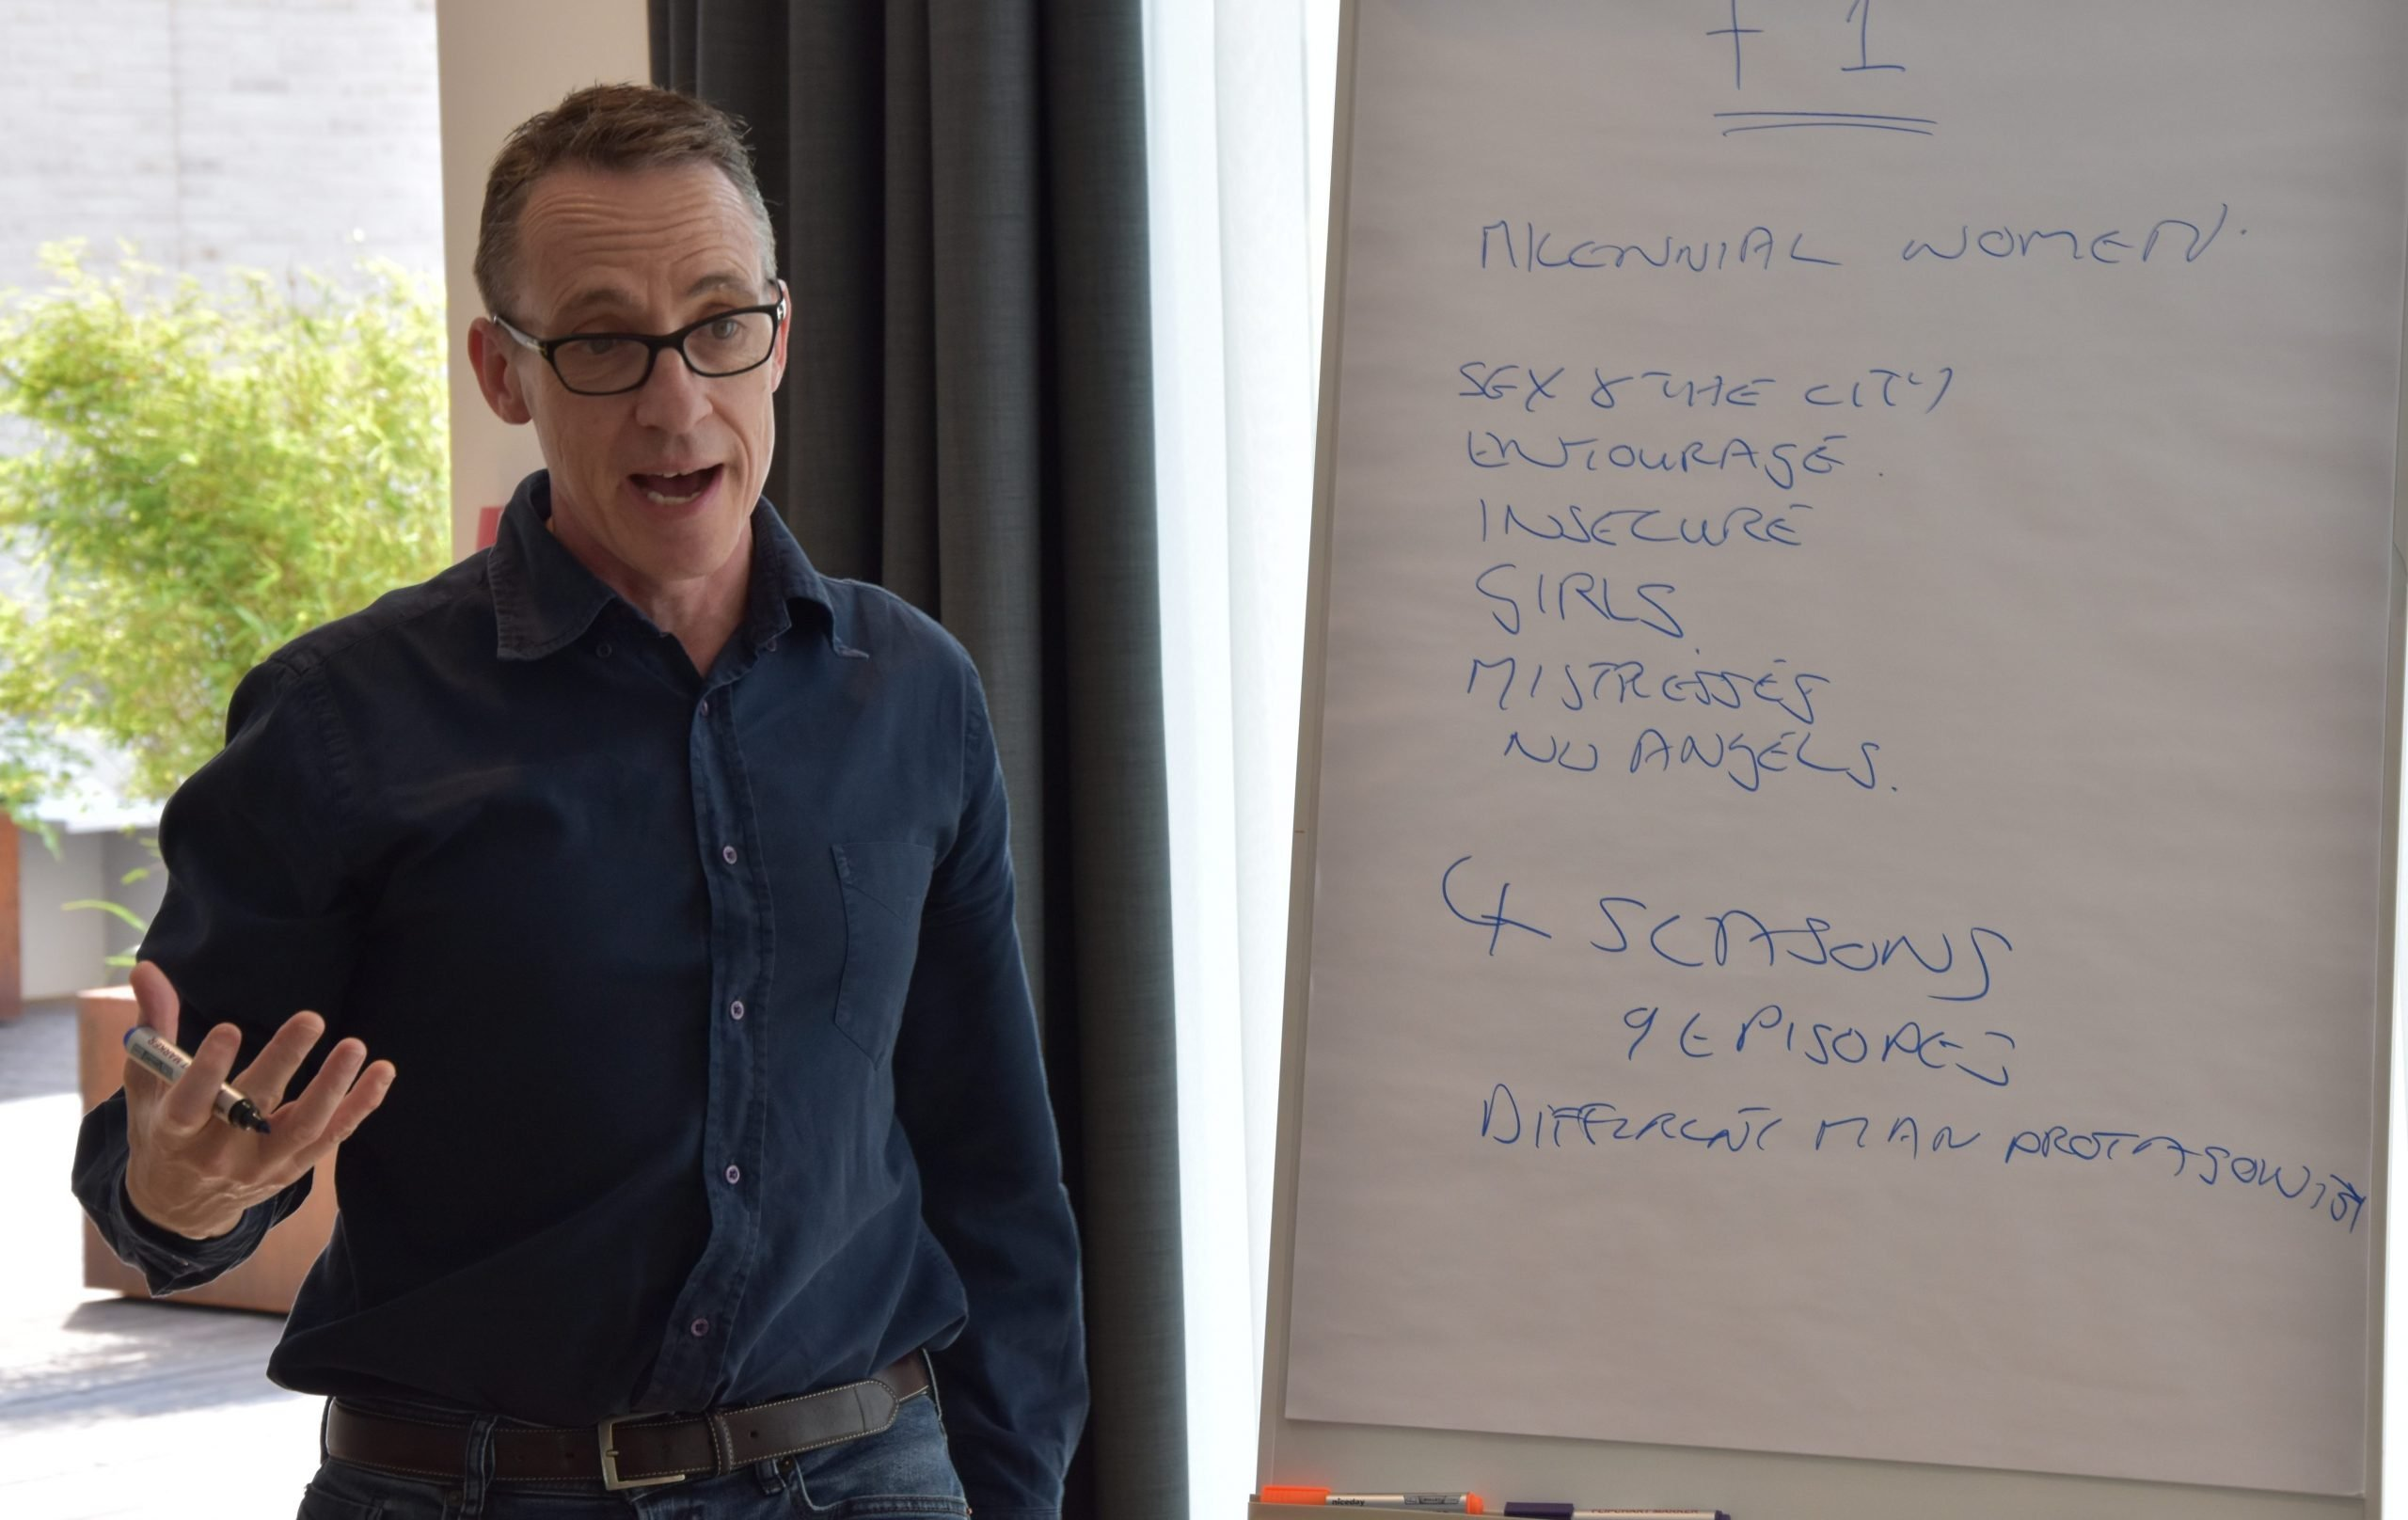 john yorke, Hamburg, training, online courses, 5 act structure, into the woods, narrative training